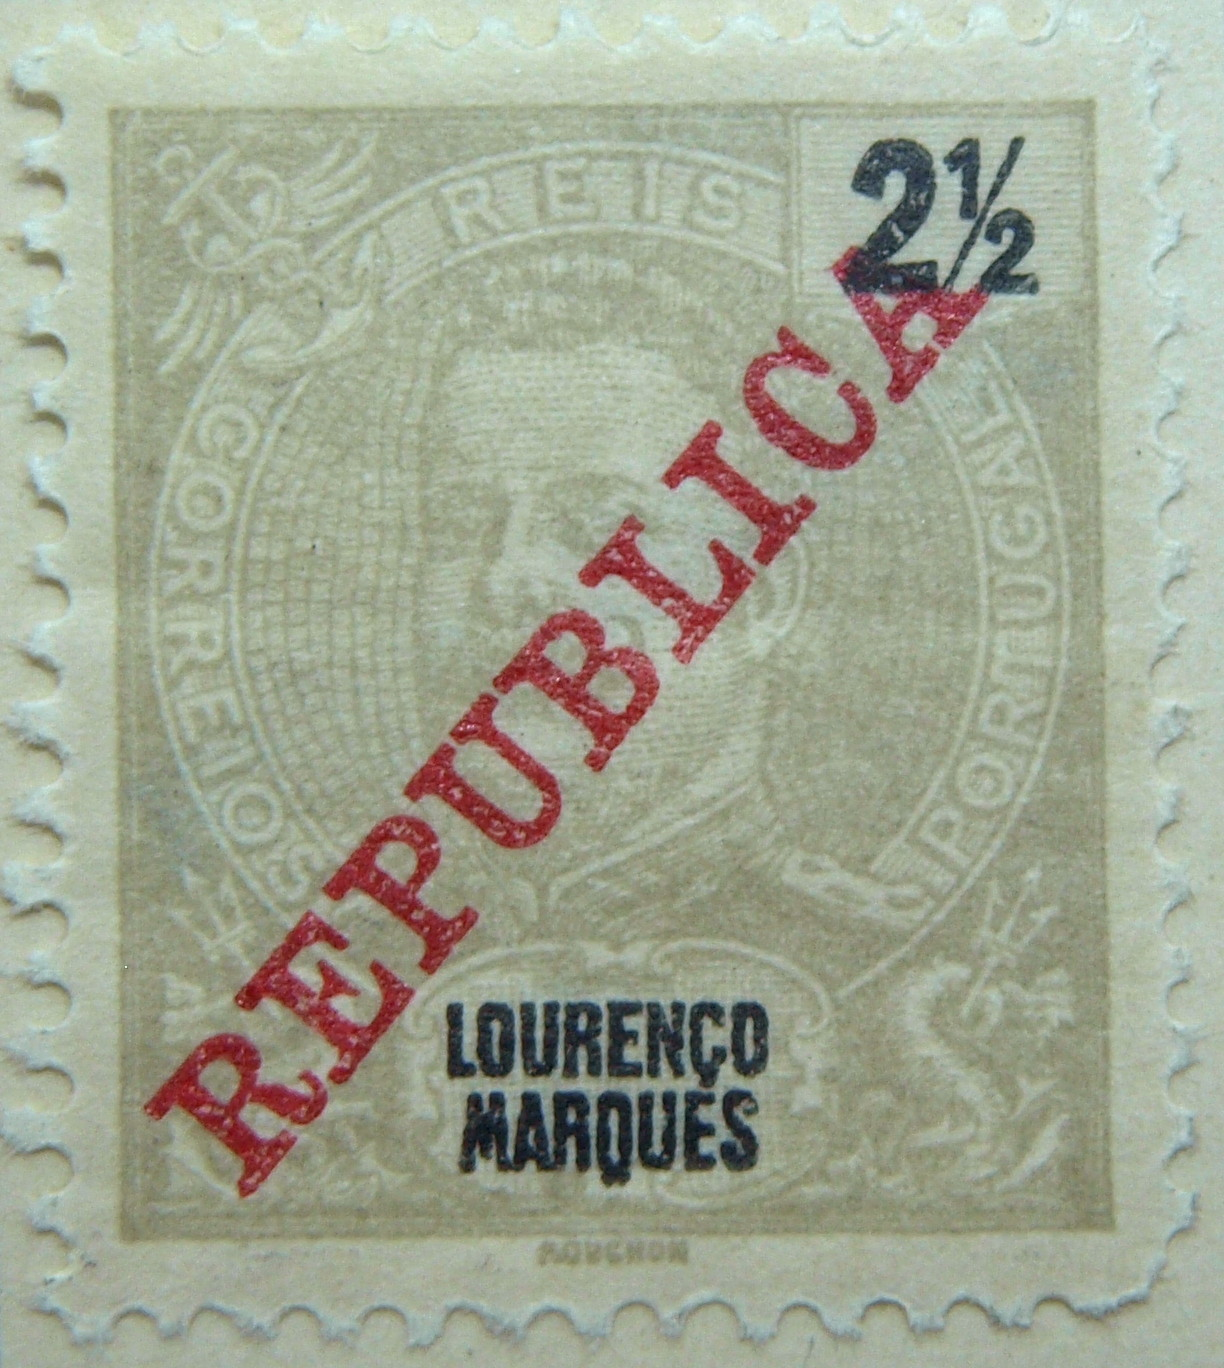 Lourenco Marques stamps